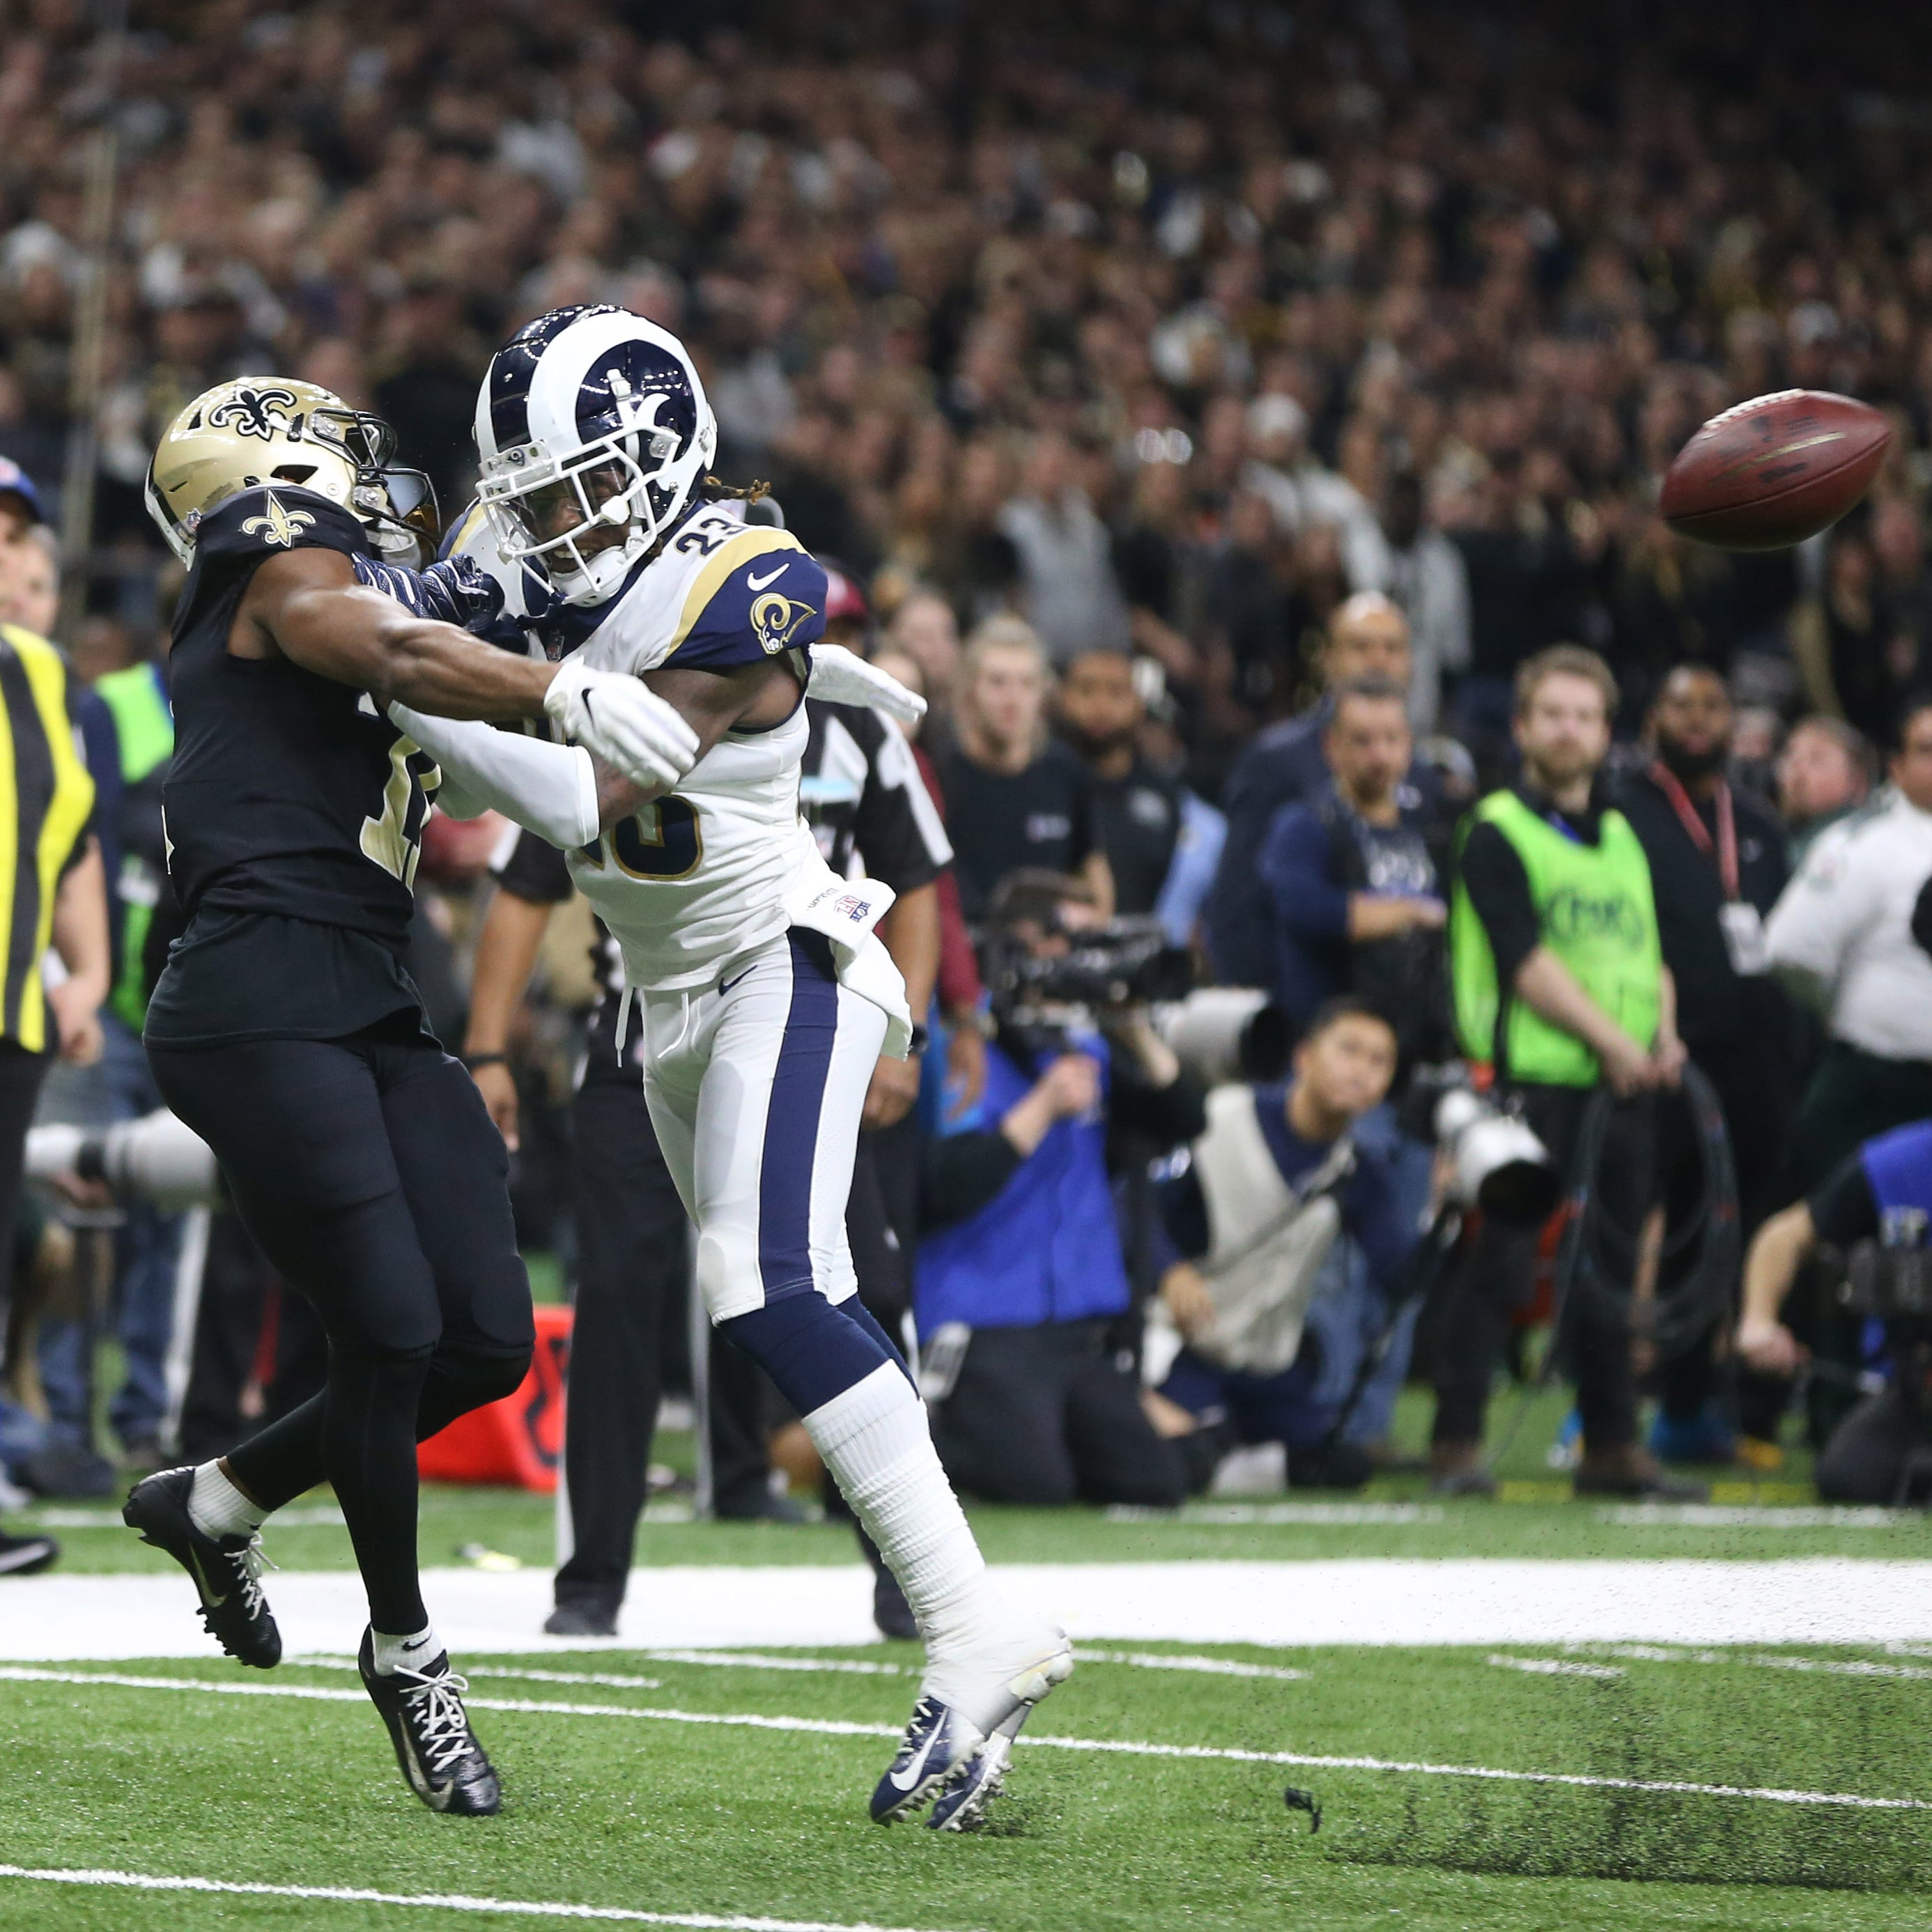 NFL Playoffs: Los Angeles Rams shock New Orleans Saints in NFC title game